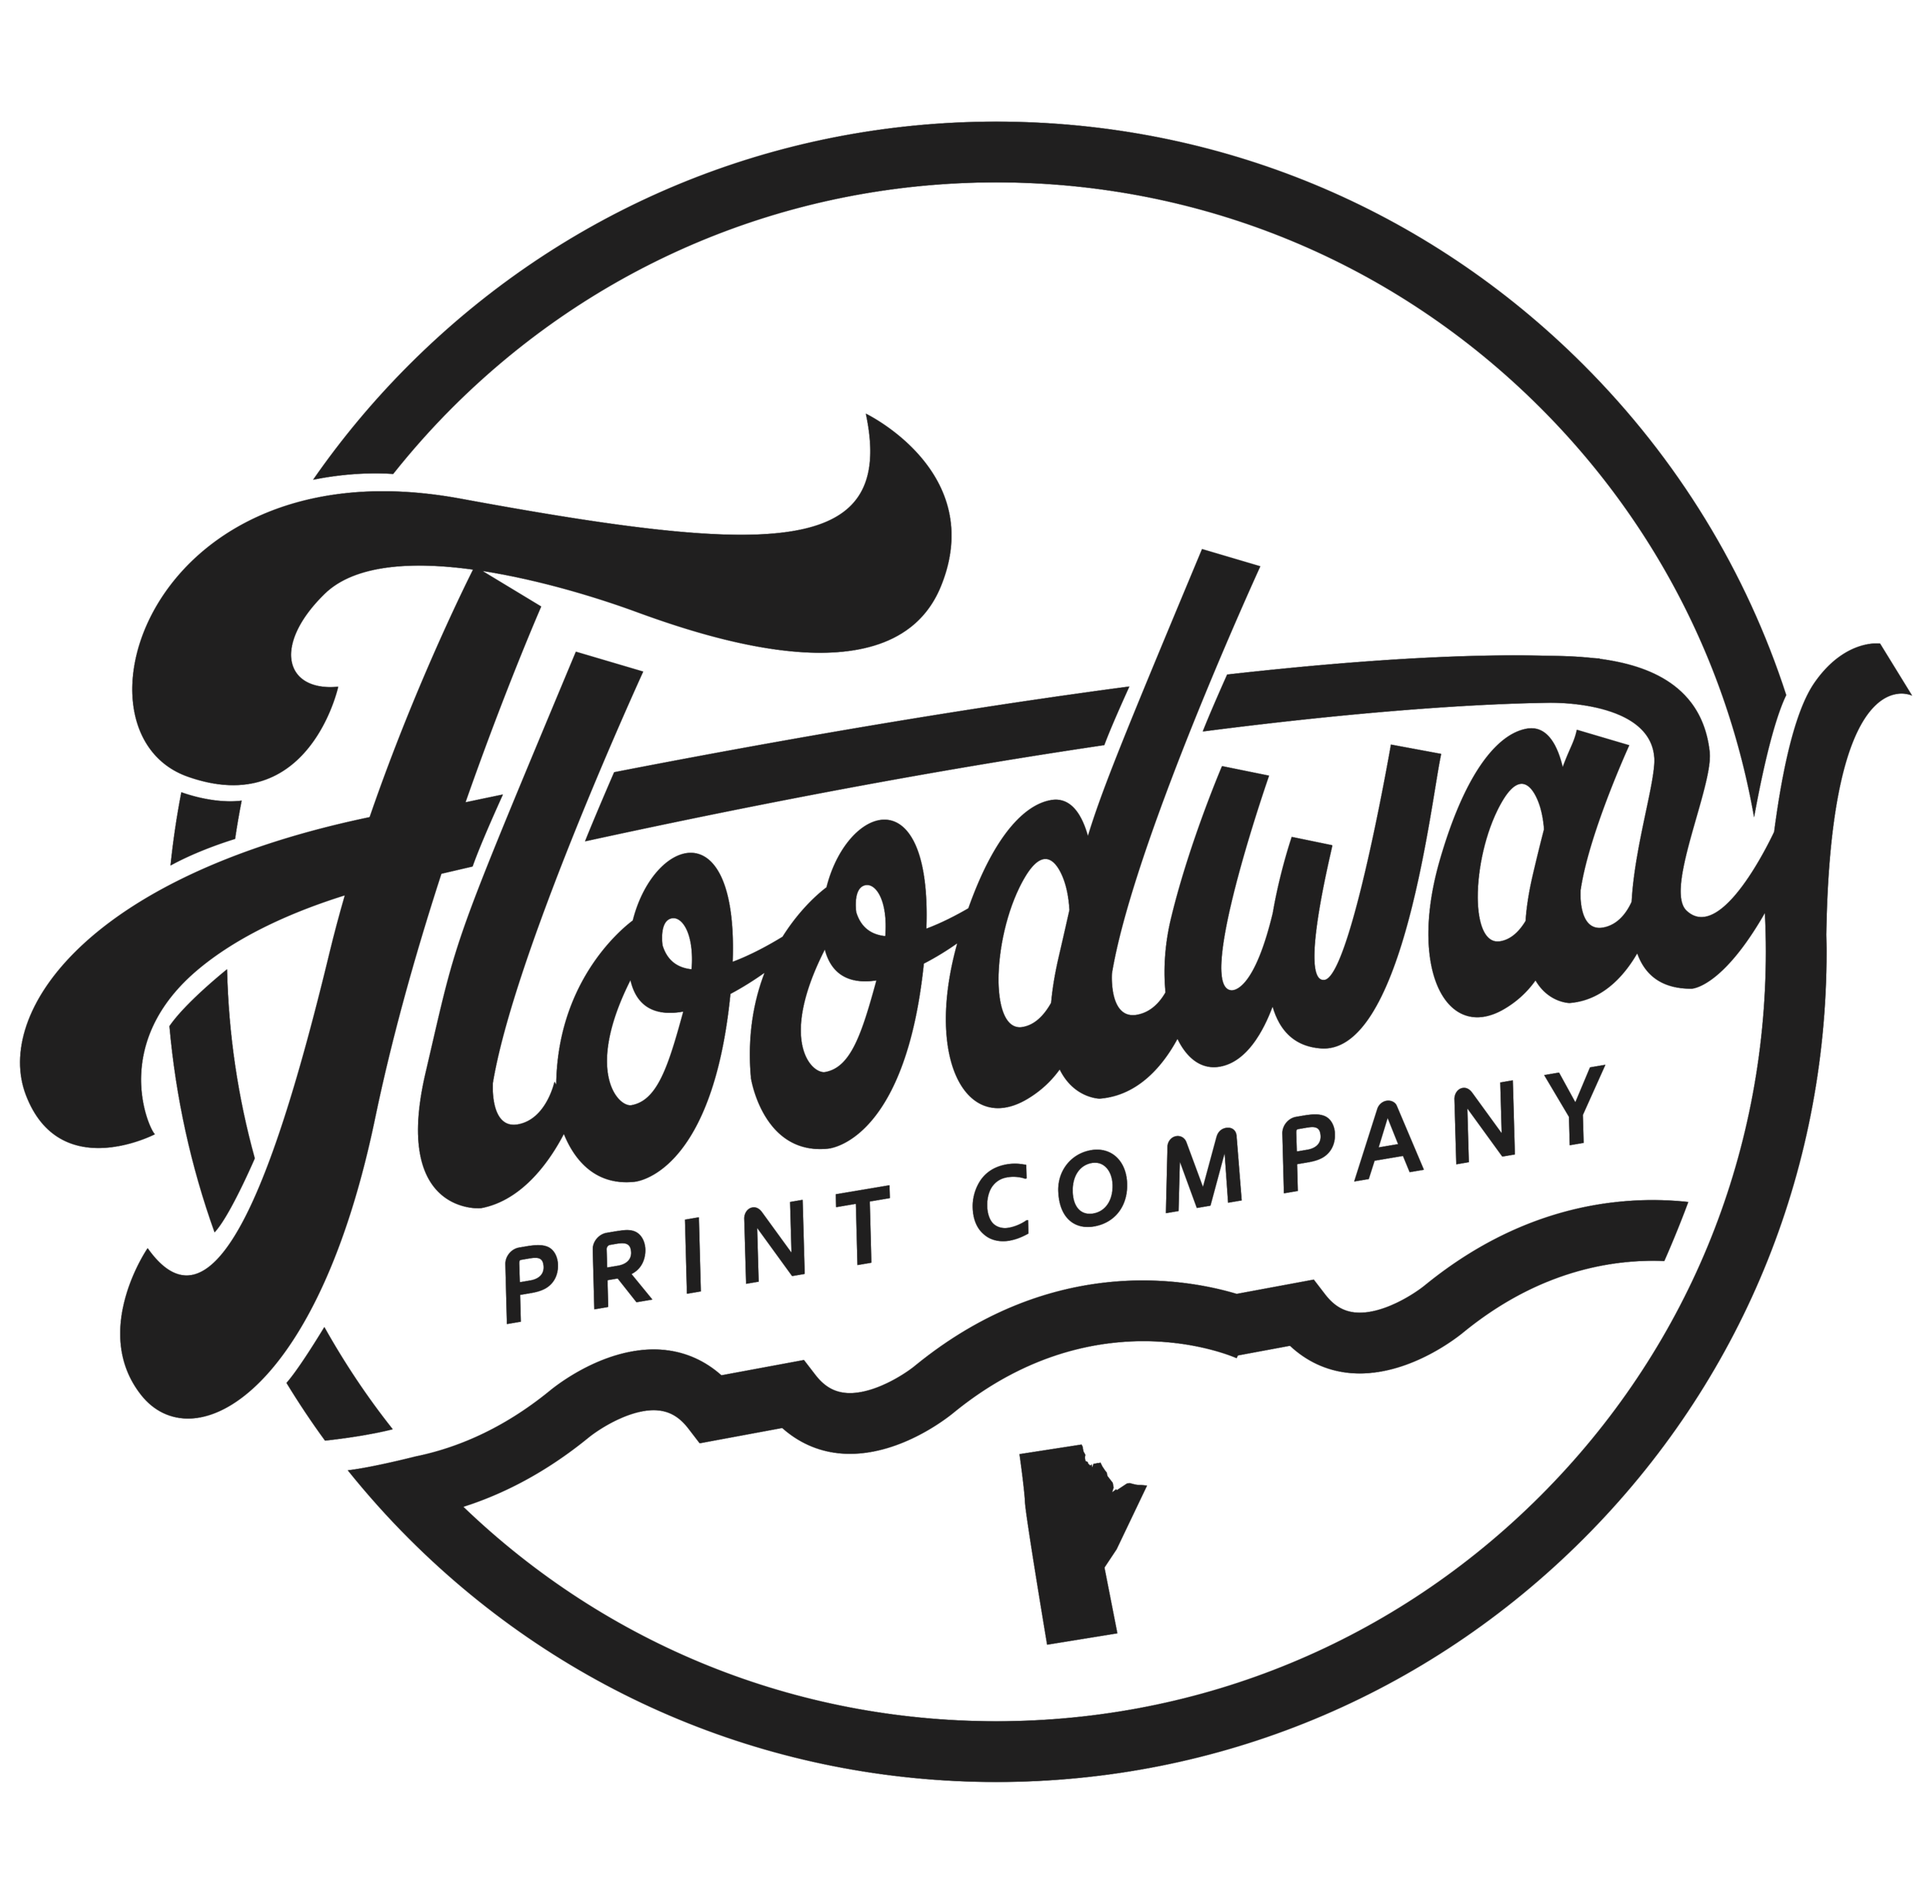 Floodway Print Company Logo - One Tone.png